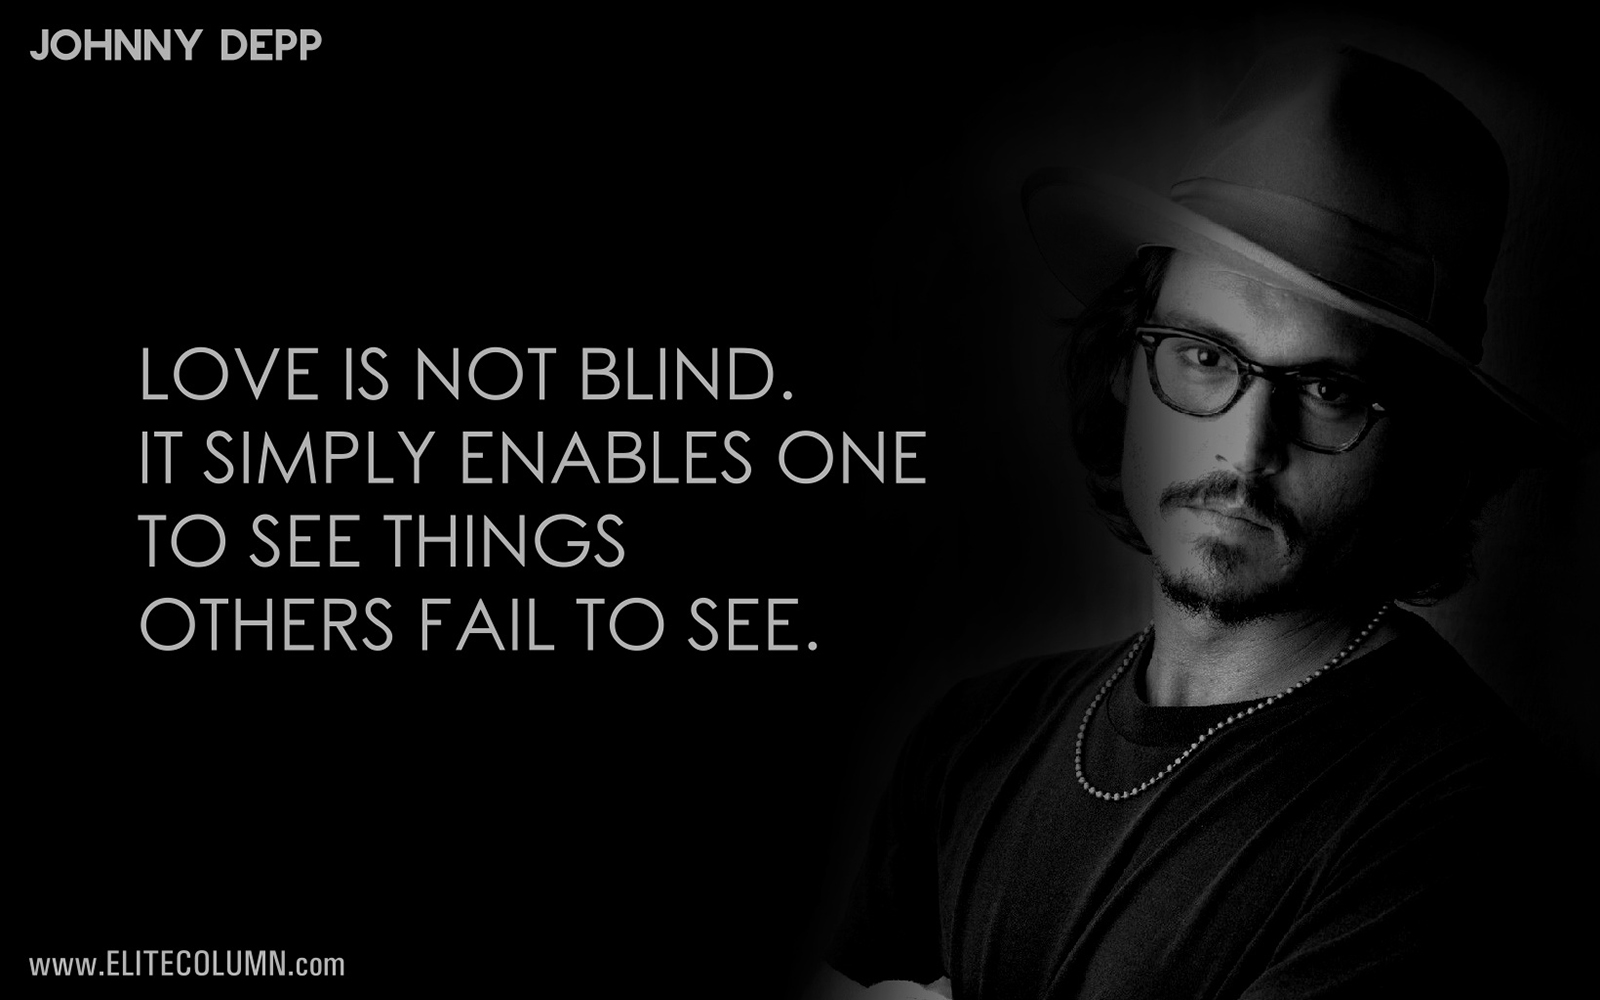 Johnny Depp Quotes (9)